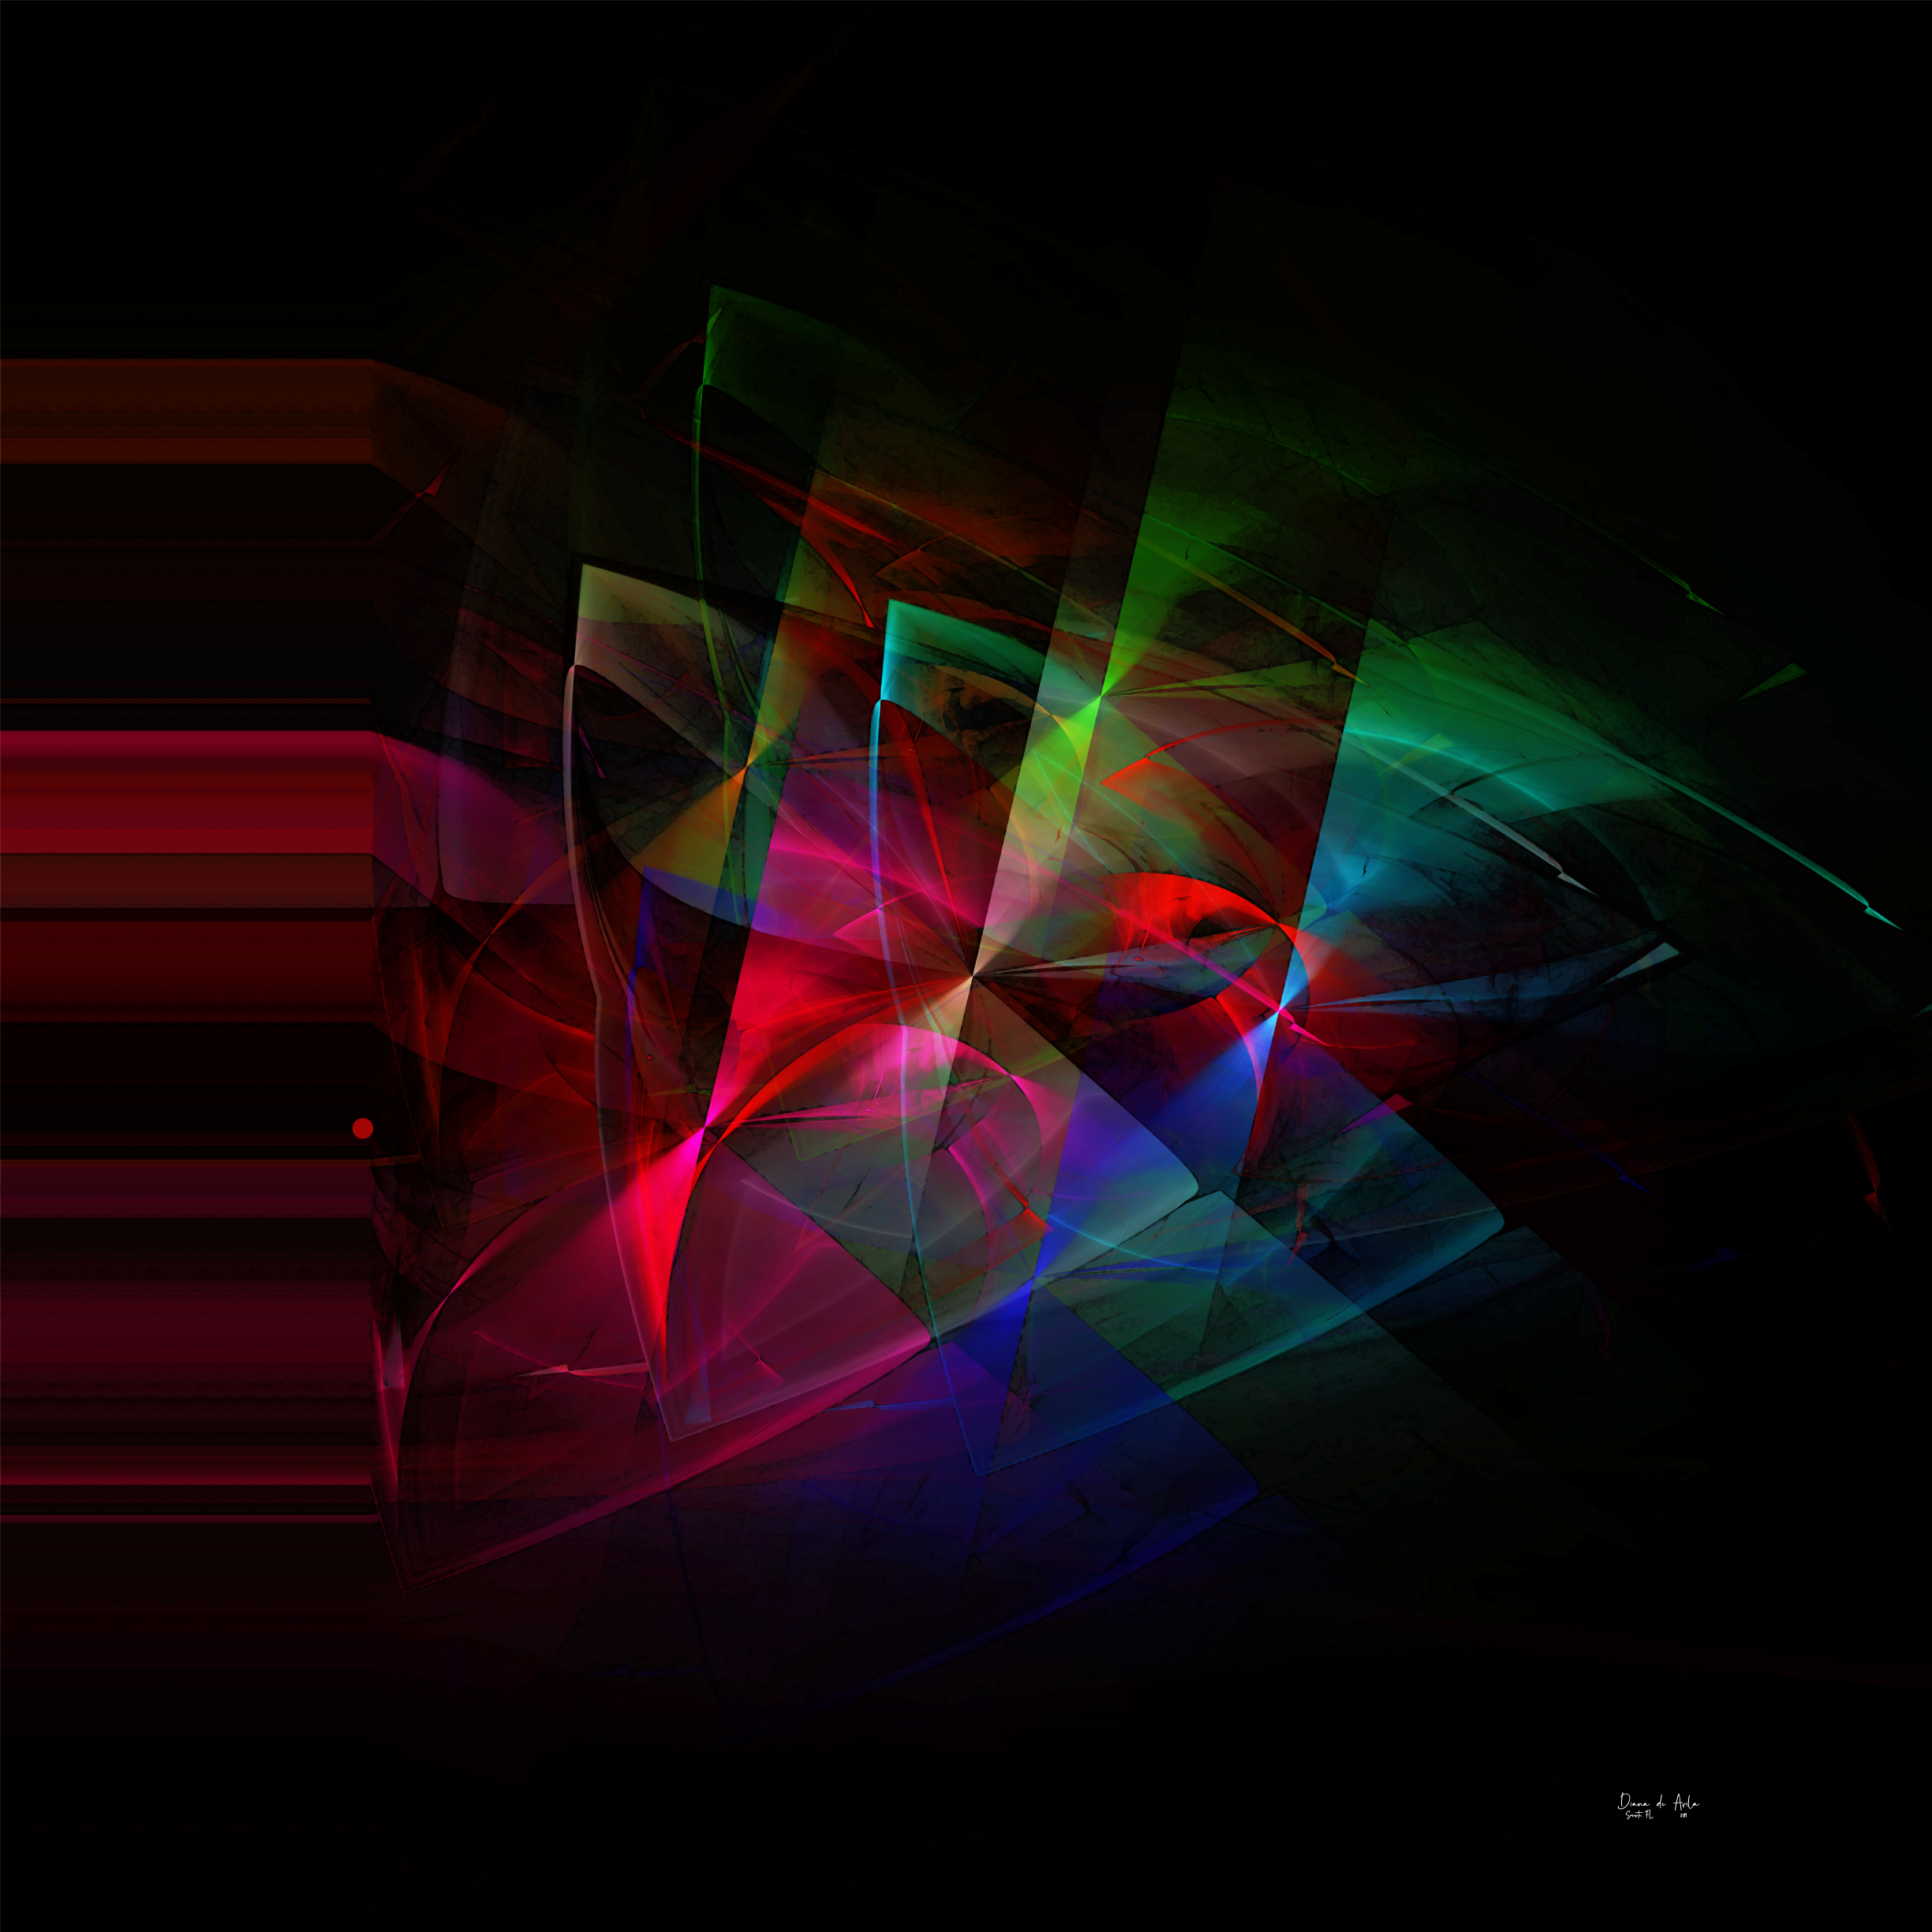 Spectra_NS2019sm@0.5x.png